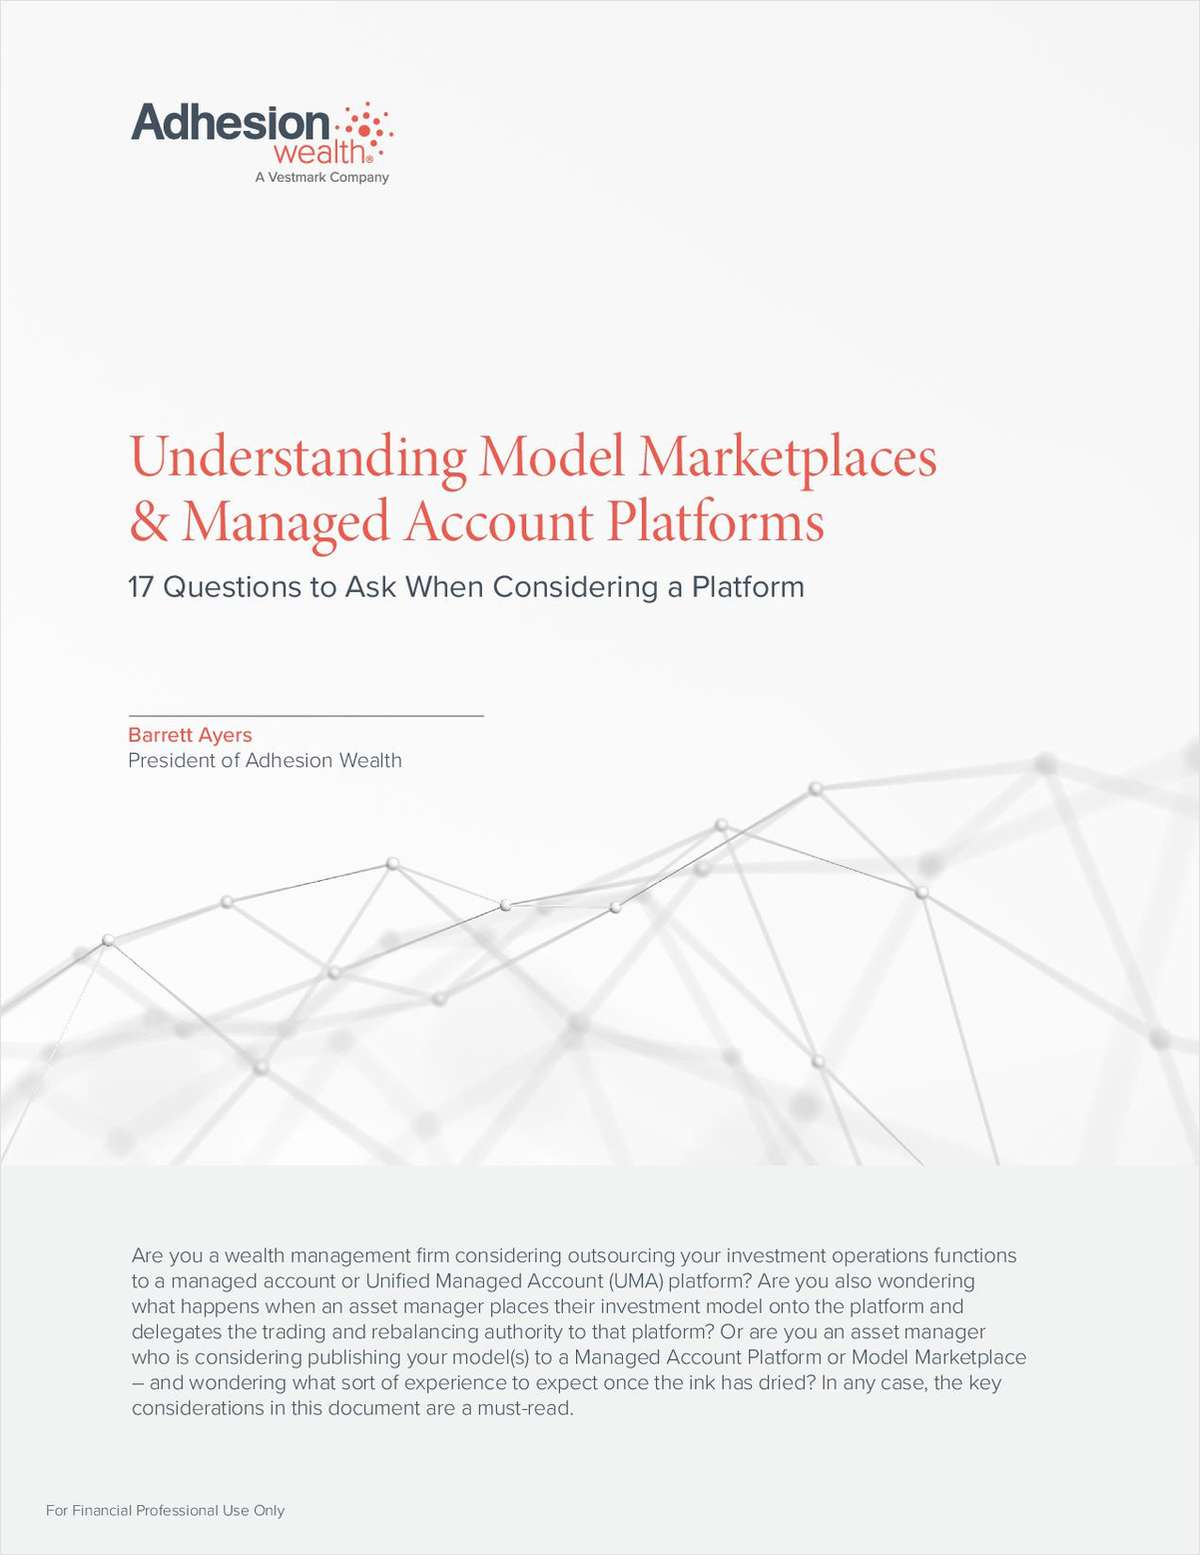 Understanding Model Marketplaces & Managed Account Platforms: 17 Questions to Ask When Considering a Platform